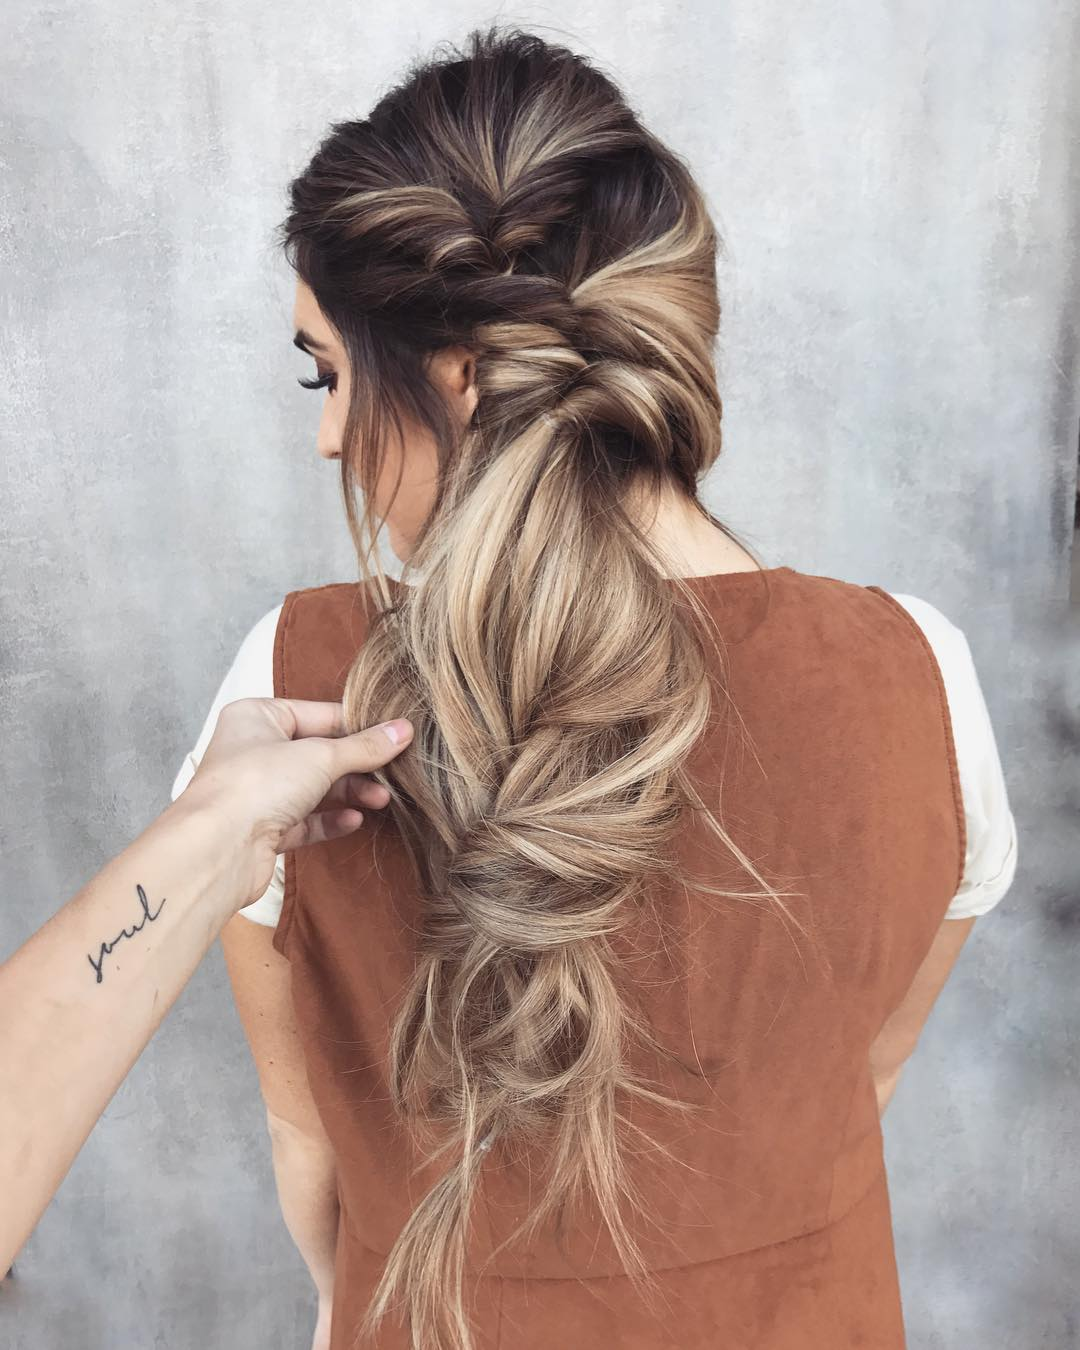 Wedding Hairstyles Braid: 10 Messy Braided Long Hairstyle Ideas For Weddings